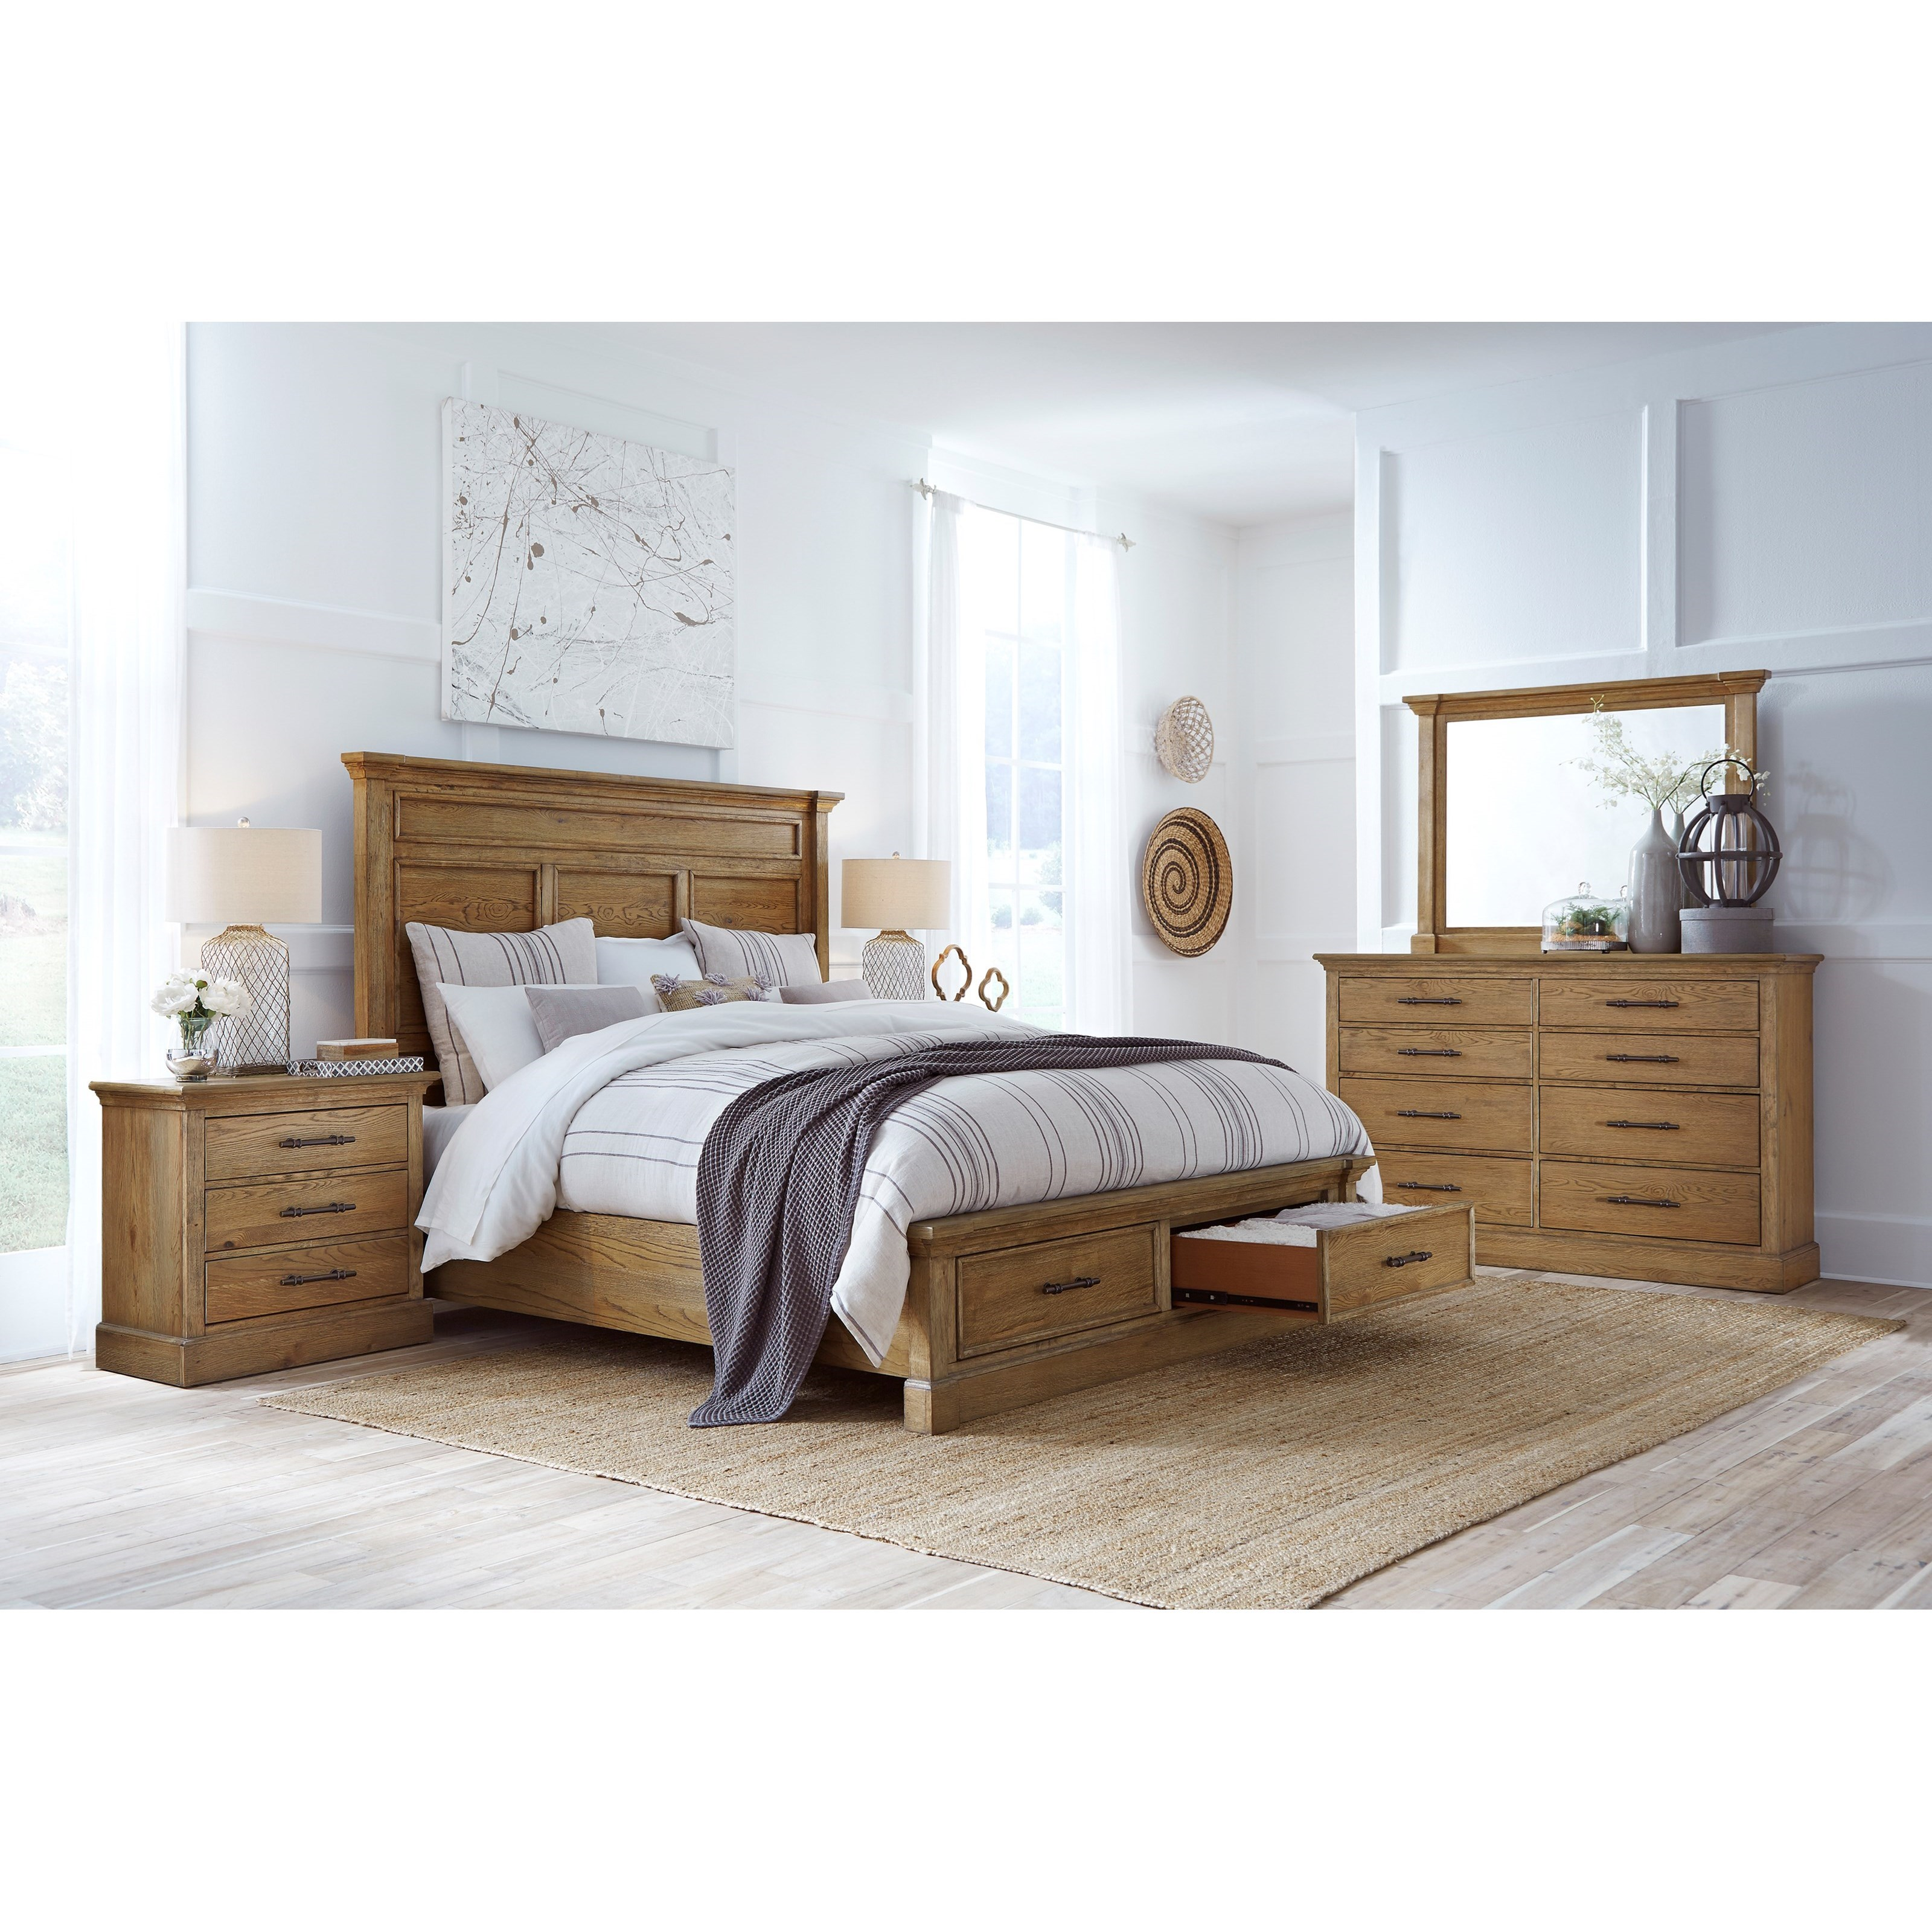 Manchester Queen Bedroom Group by Aspenhome at Baer's Furniture